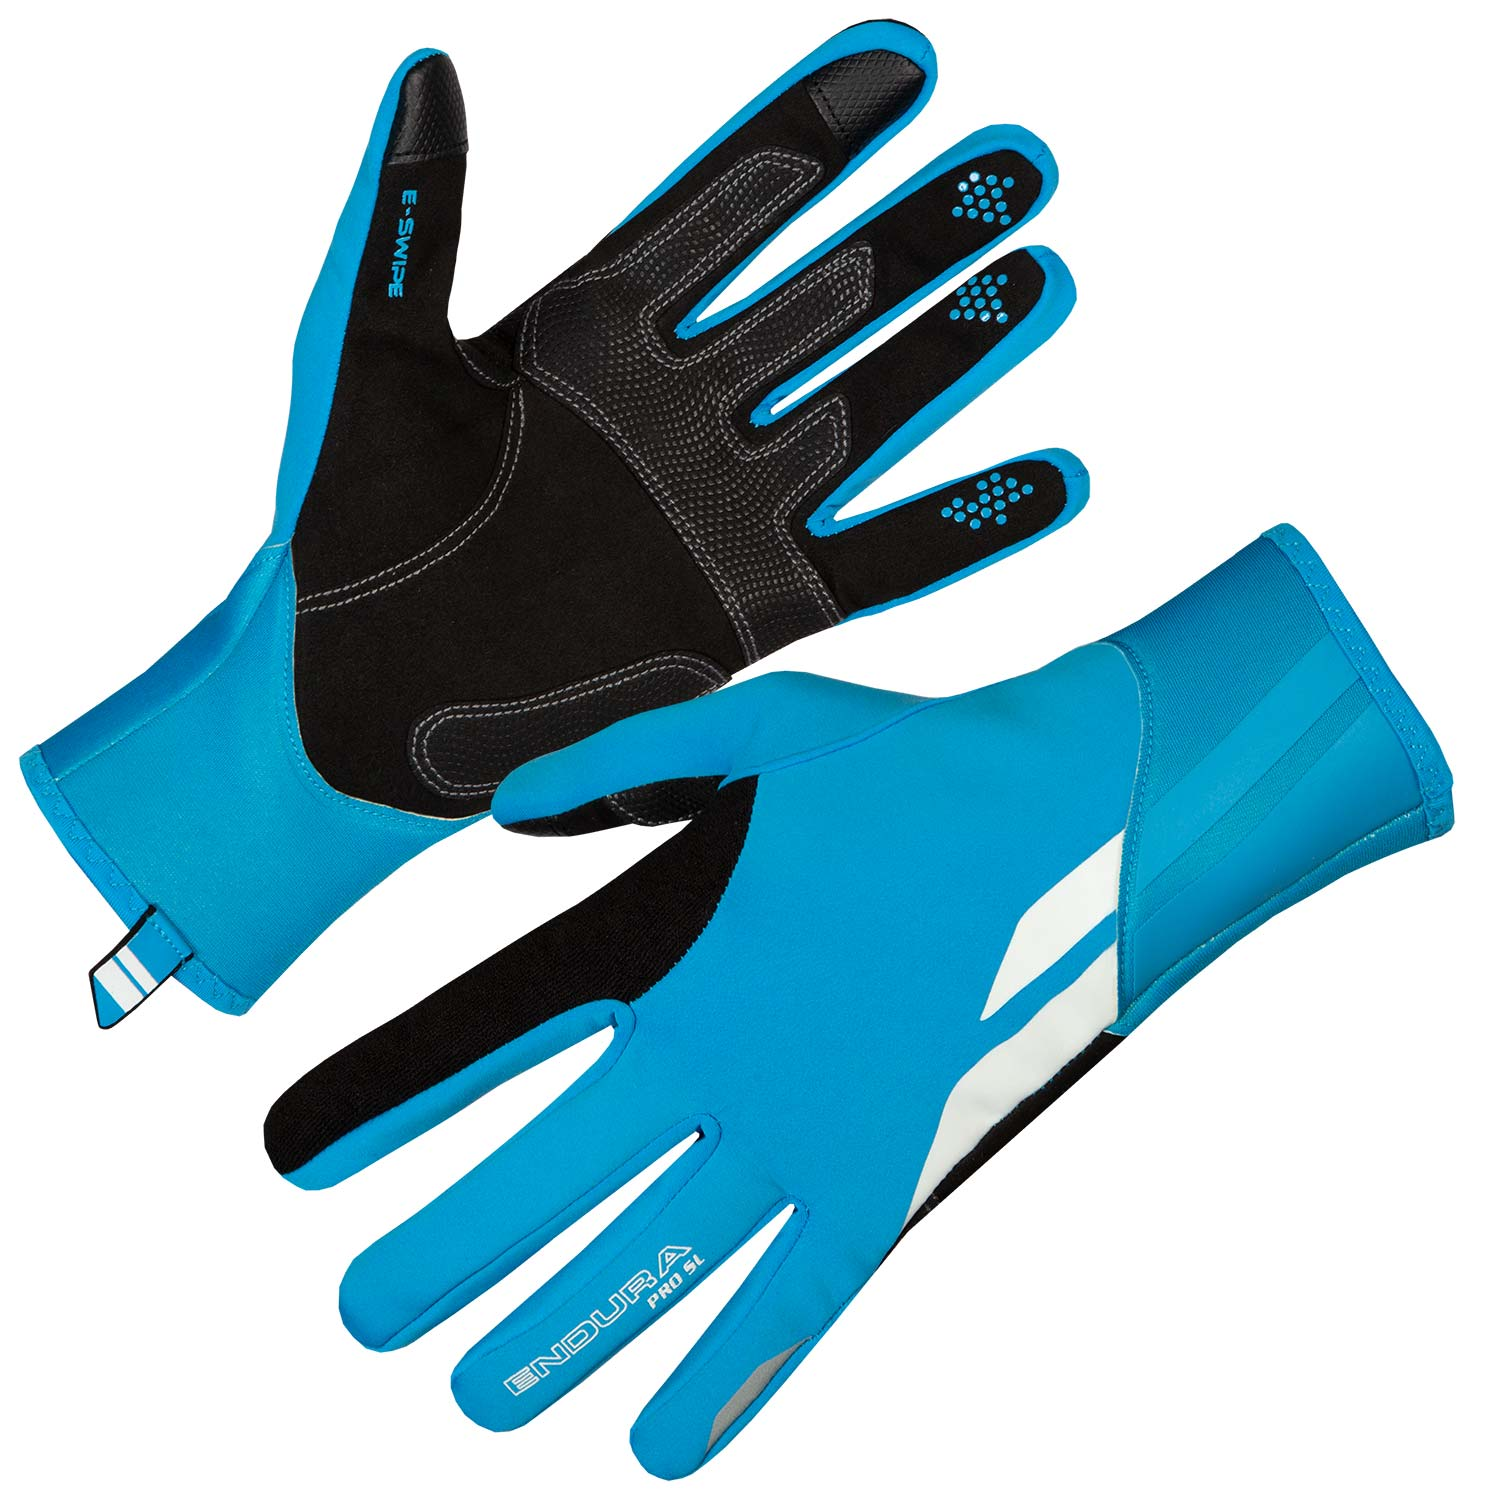 Pro SL Windproof Glove front